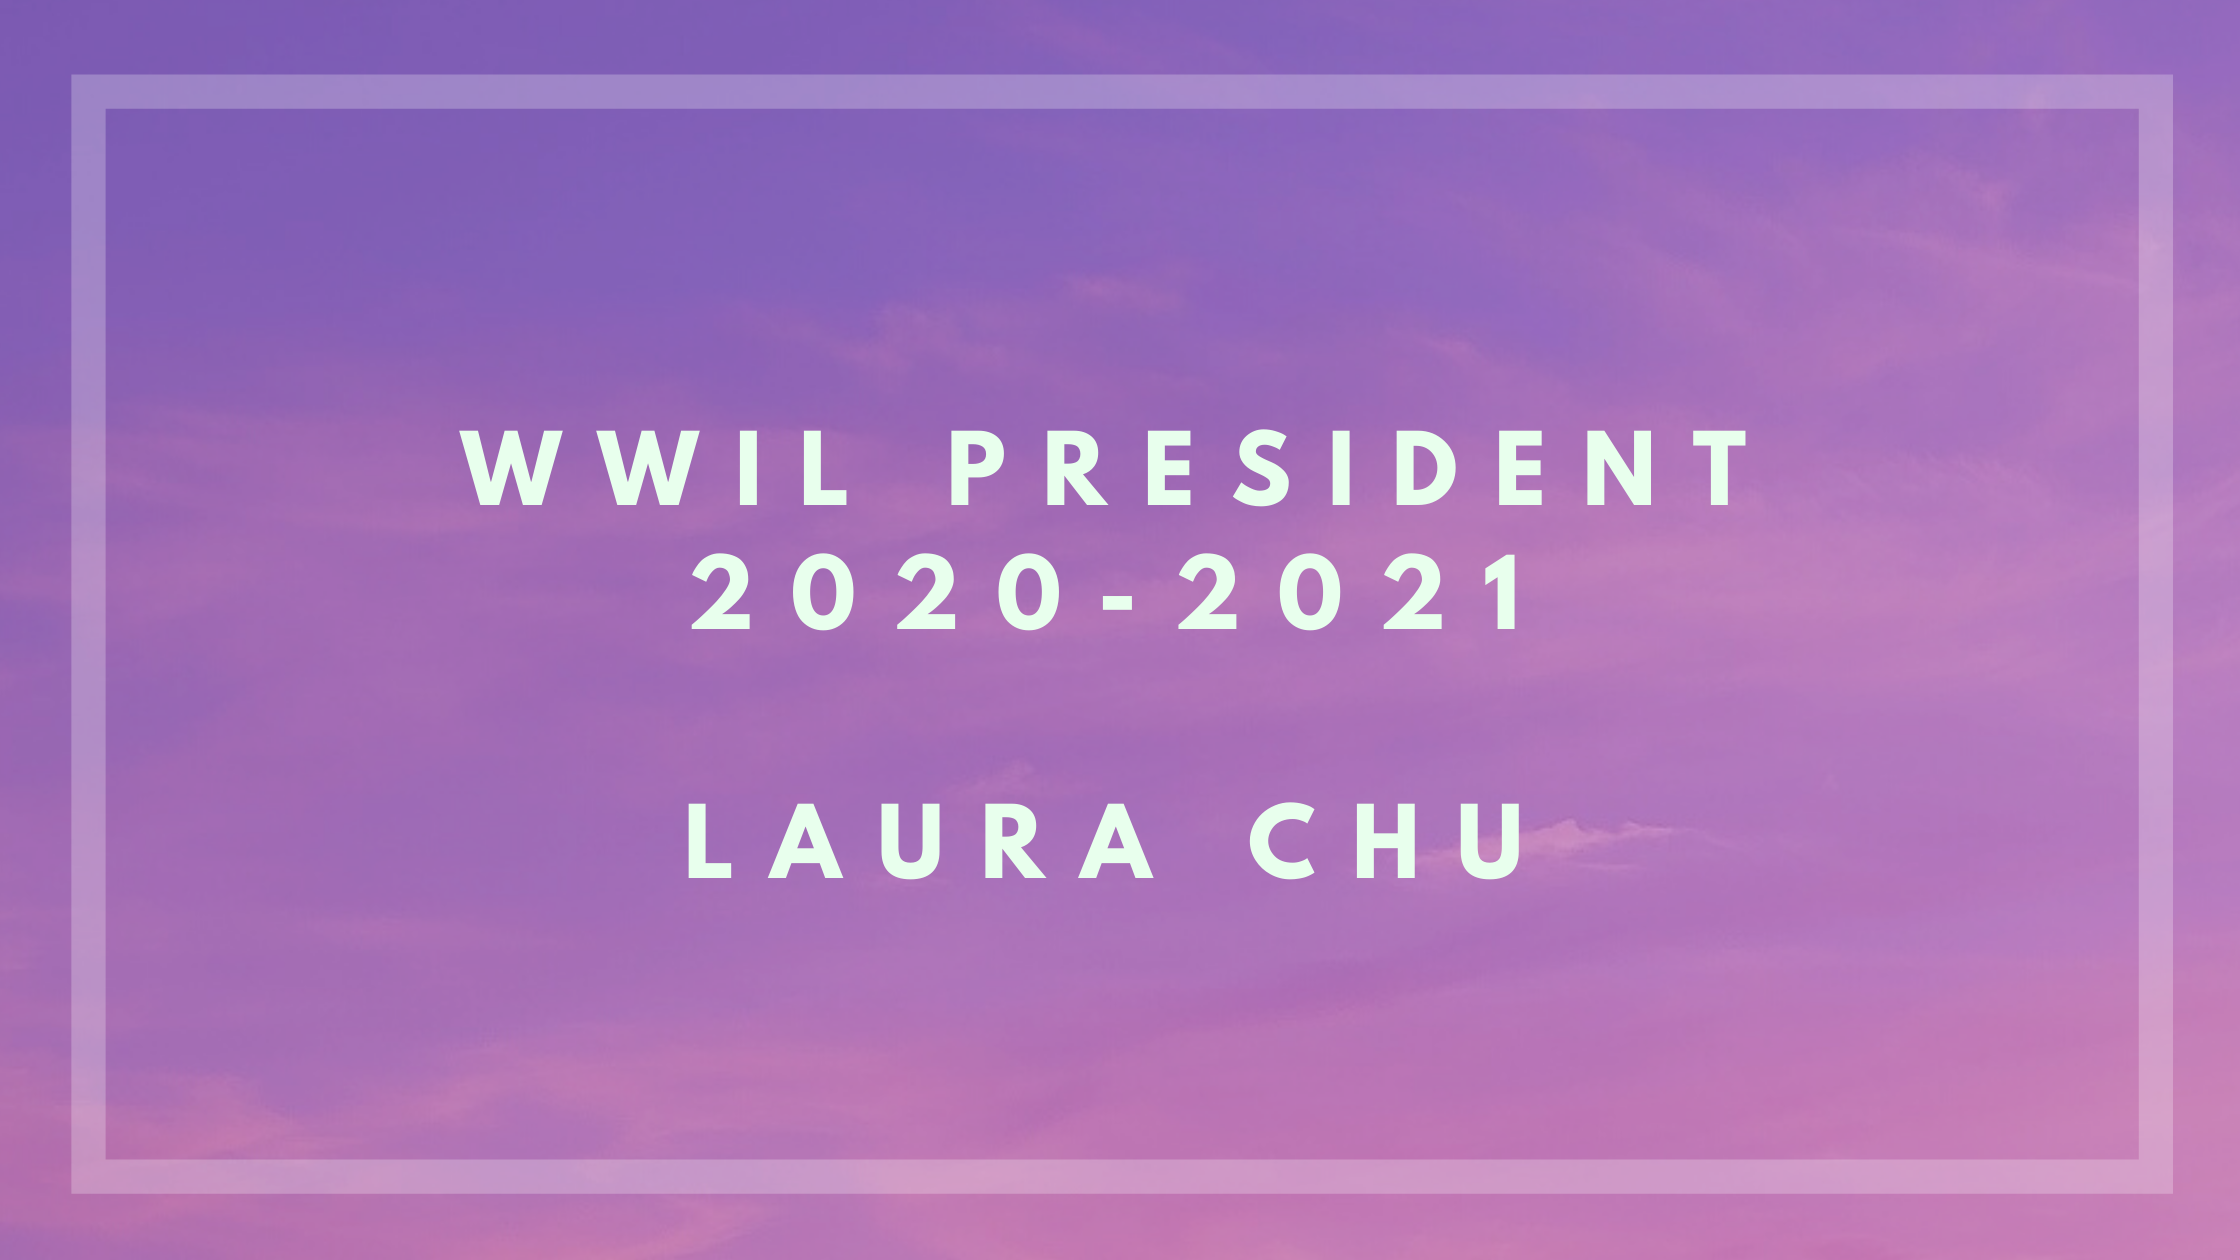 Announcement: WWIL 2020-2021 President Laura Chu